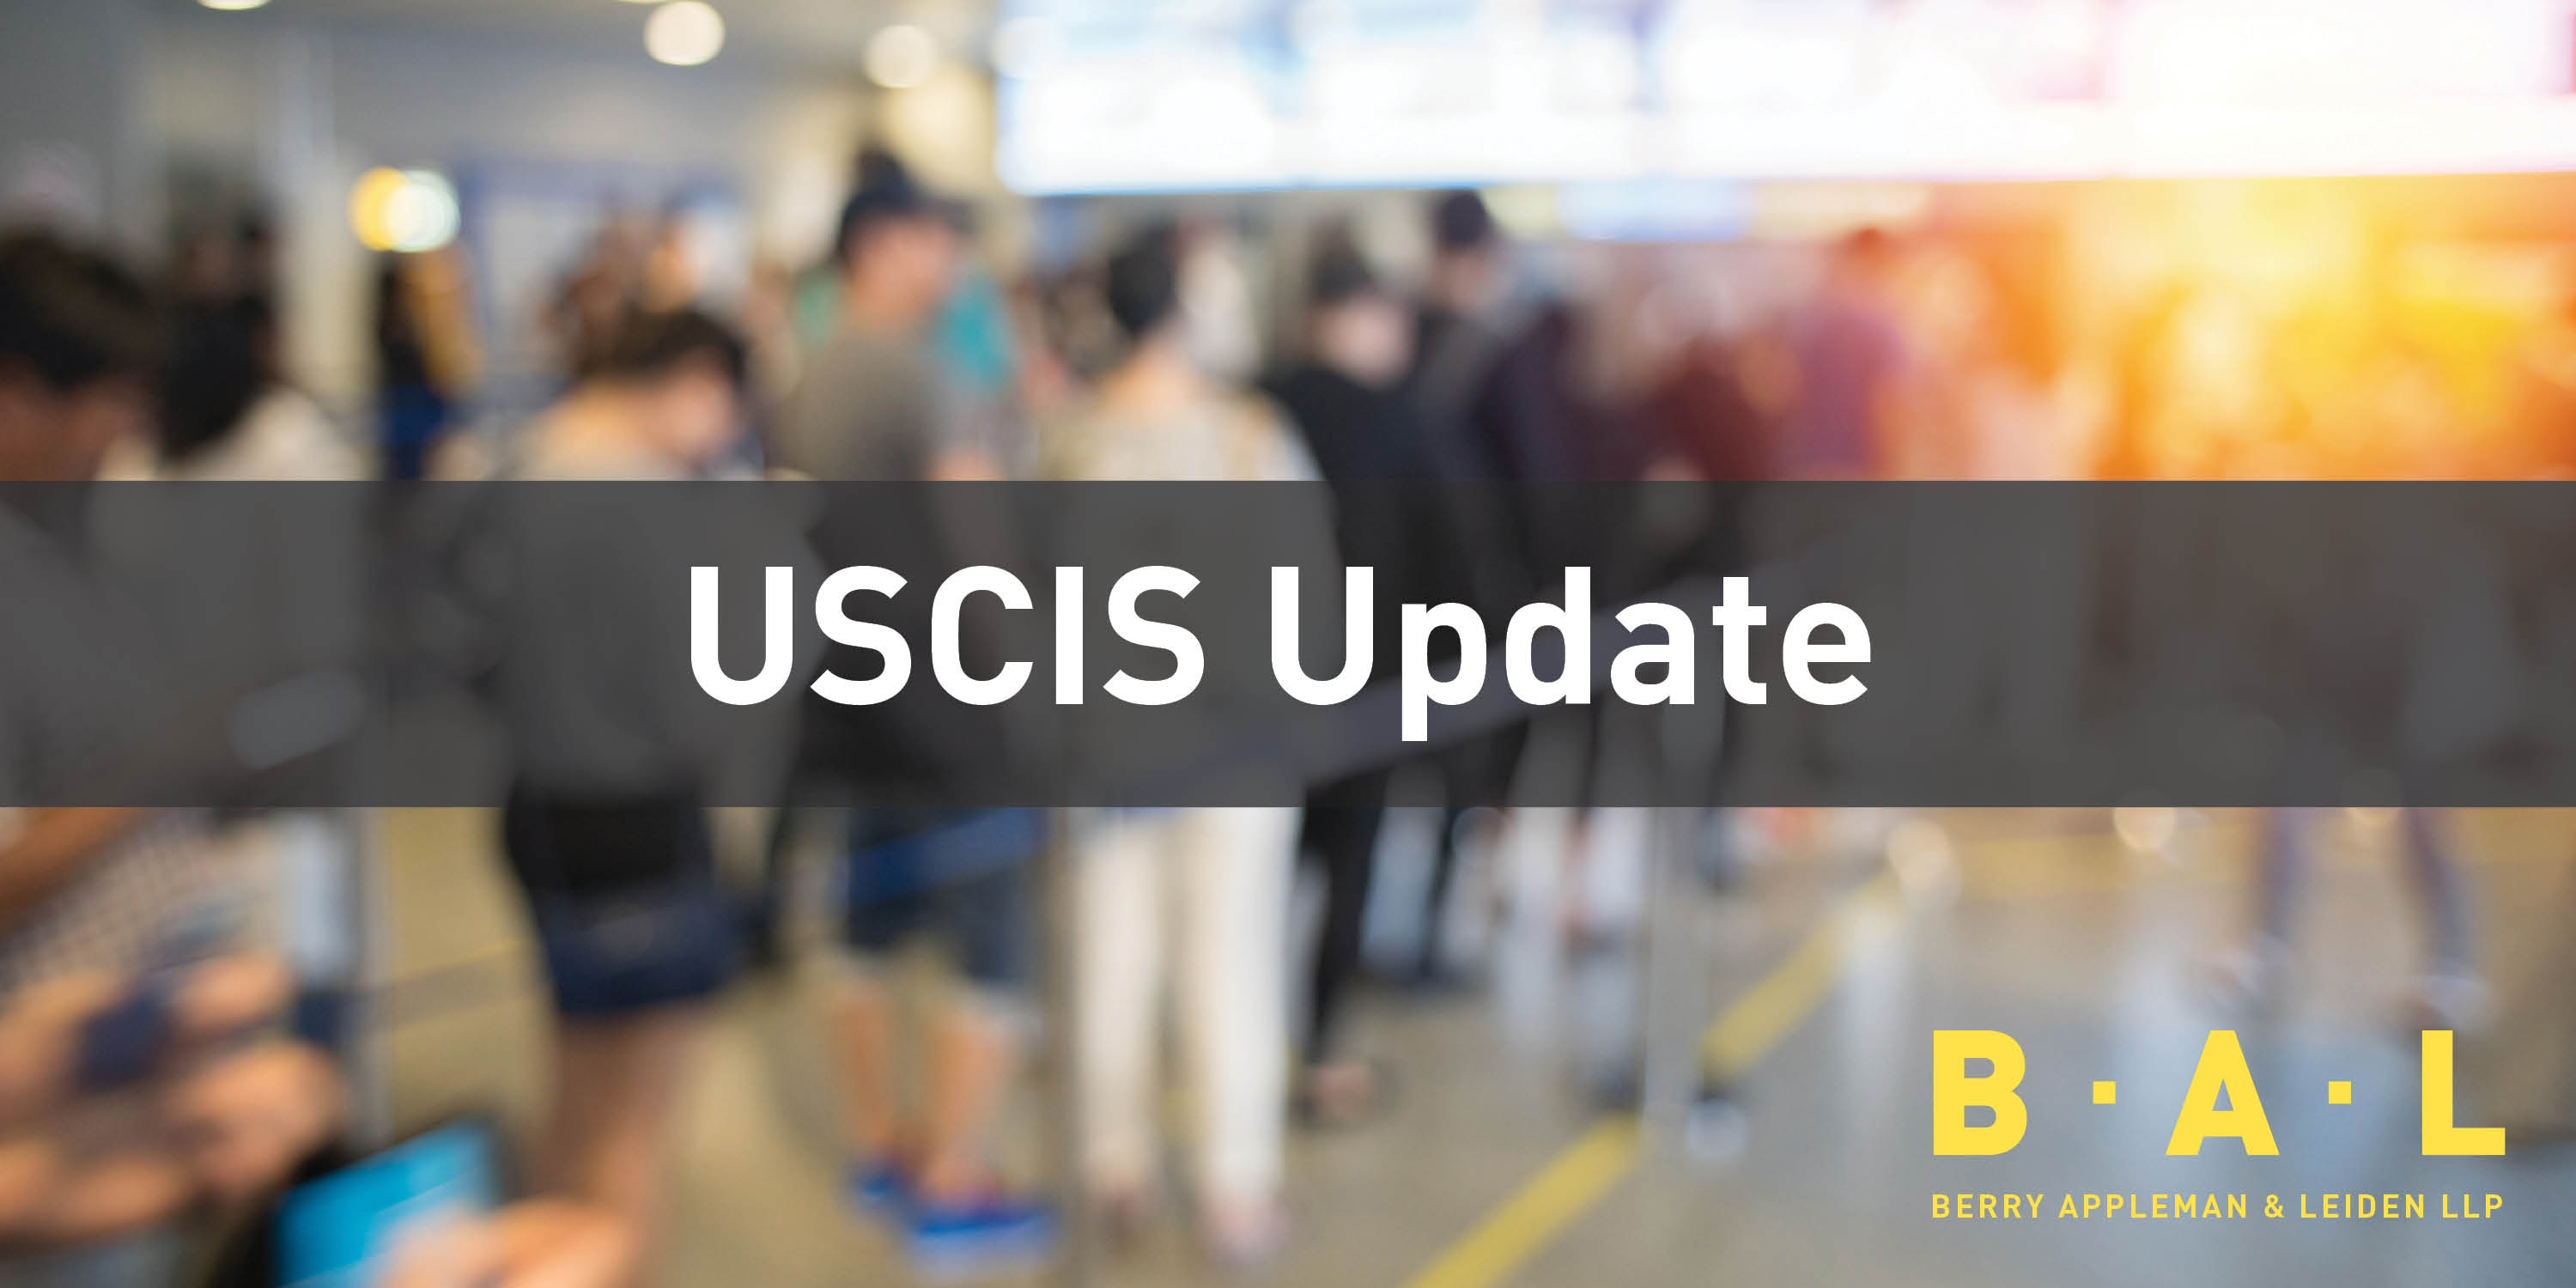 USCIS clarifies definition of 'one continuous year' for L-1